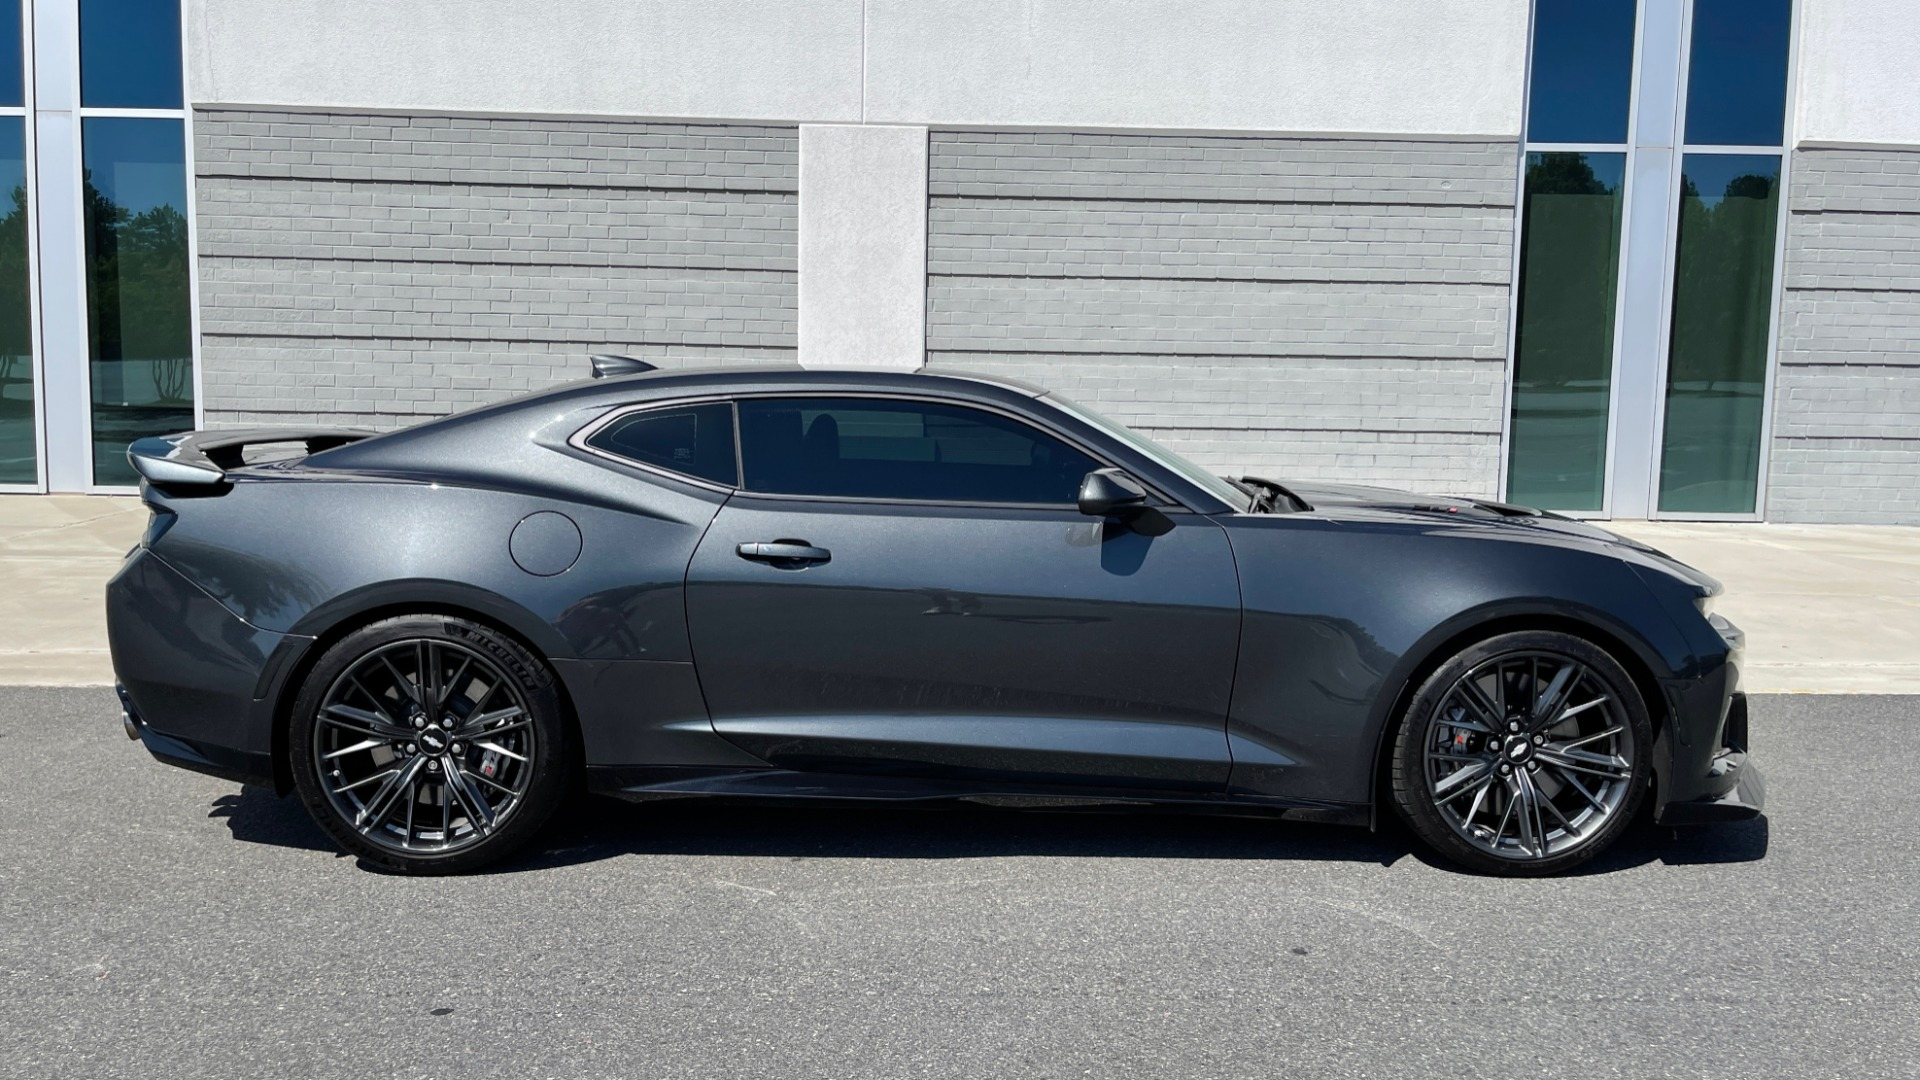 Used 2018 Chevrolet CAMARO ZL1 SUPERCHARGED COUPE 850HP / 10-SPD AUTO / NAV / BOSE / REARVIEW for sale $59,995 at Formula Imports in Charlotte NC 28227 8